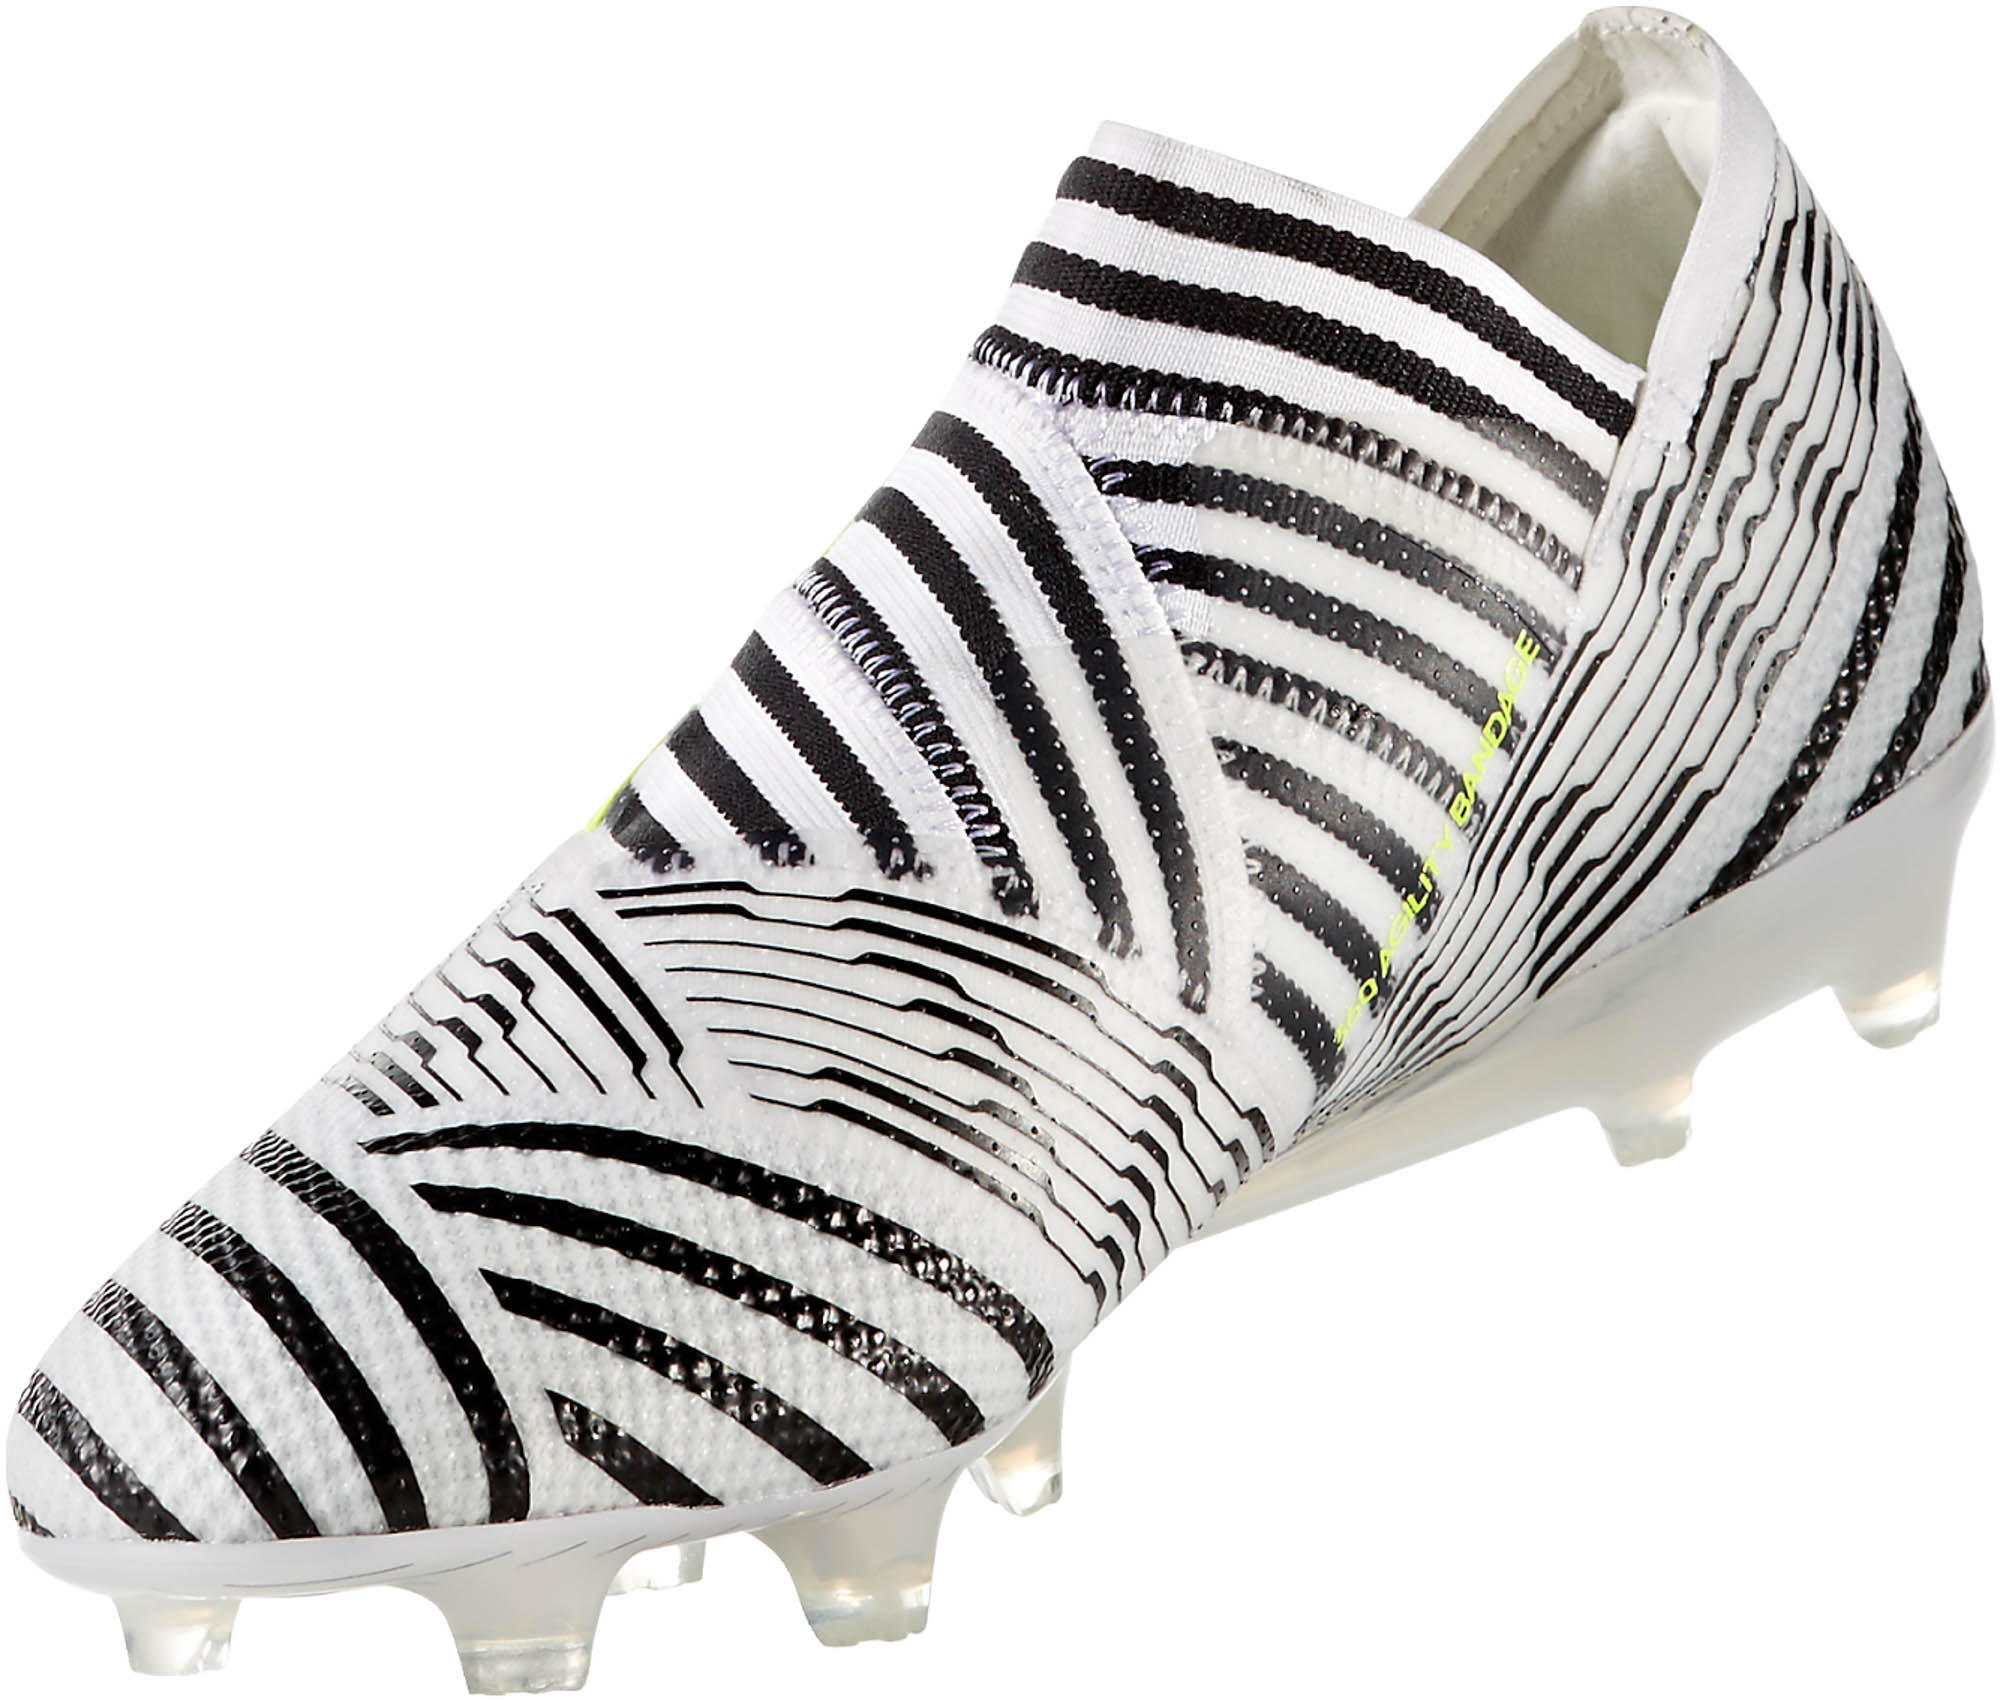 adidas Nemeziz 17 360Agility FG – WhiteSolar Yellow